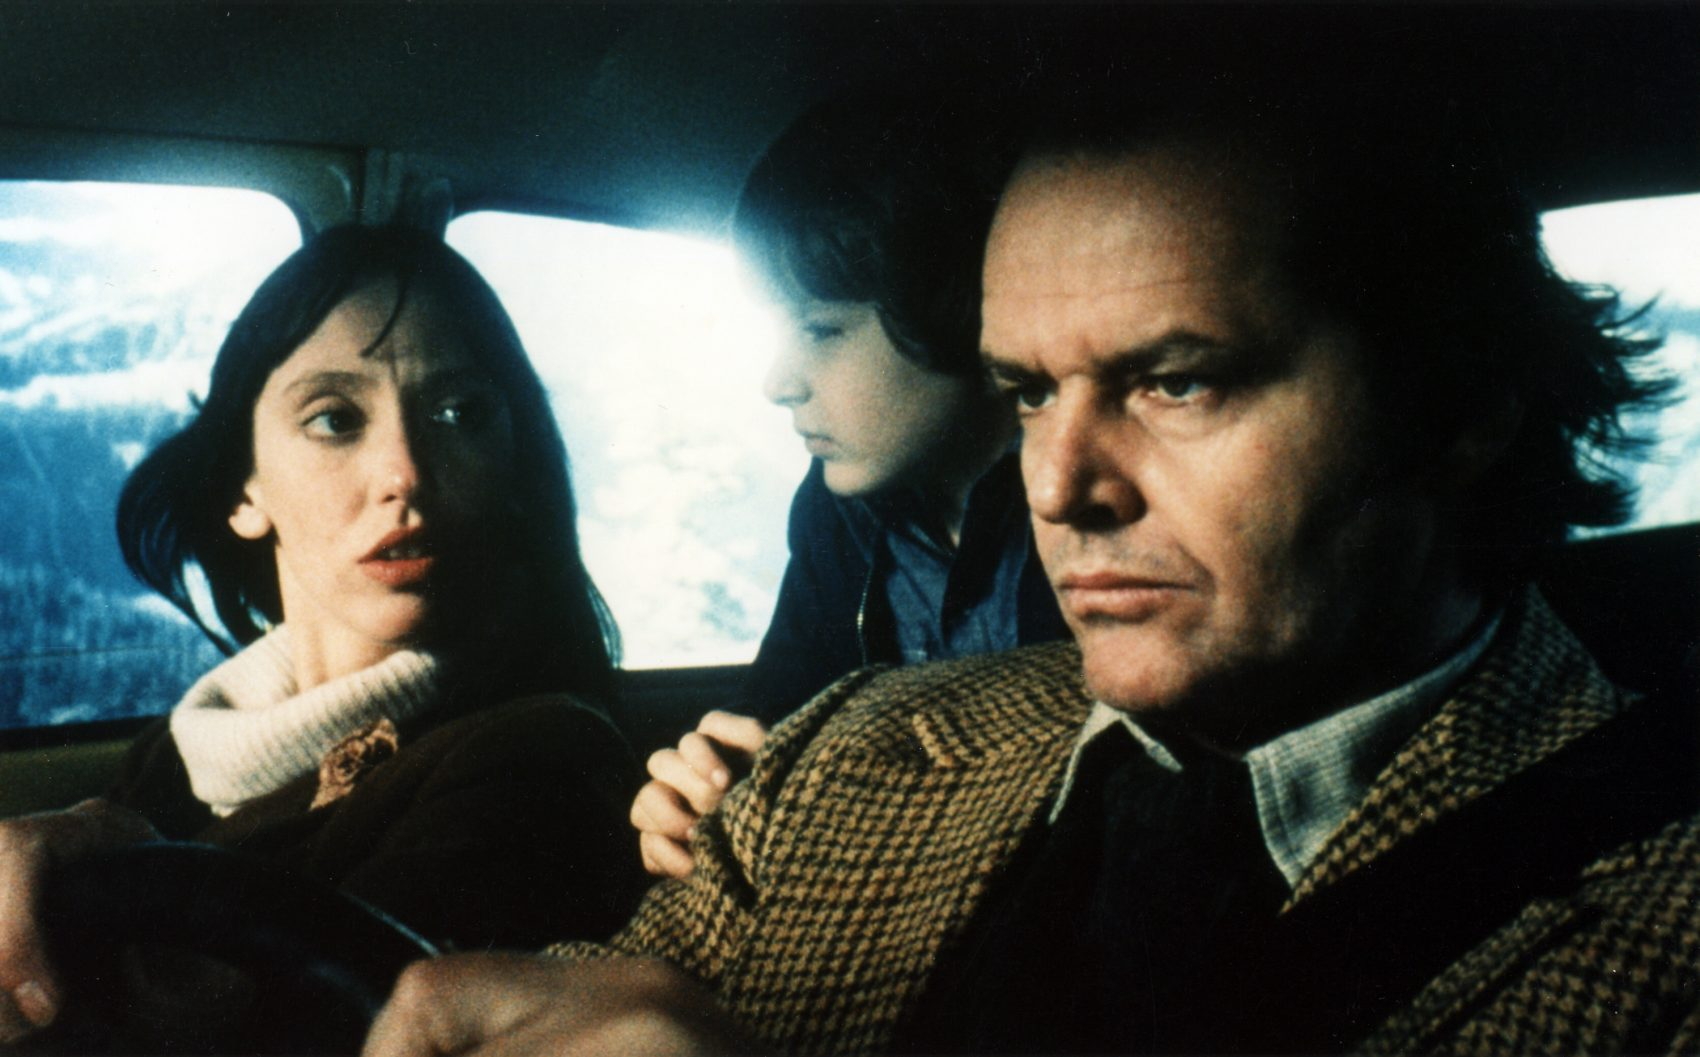 The Torrances on the journey to the Overlook - (l to r) Wendy (Shelley Duval), Danny (Danny Lloyd) and Jack (Jack Nicholson) in The Shining (1980)